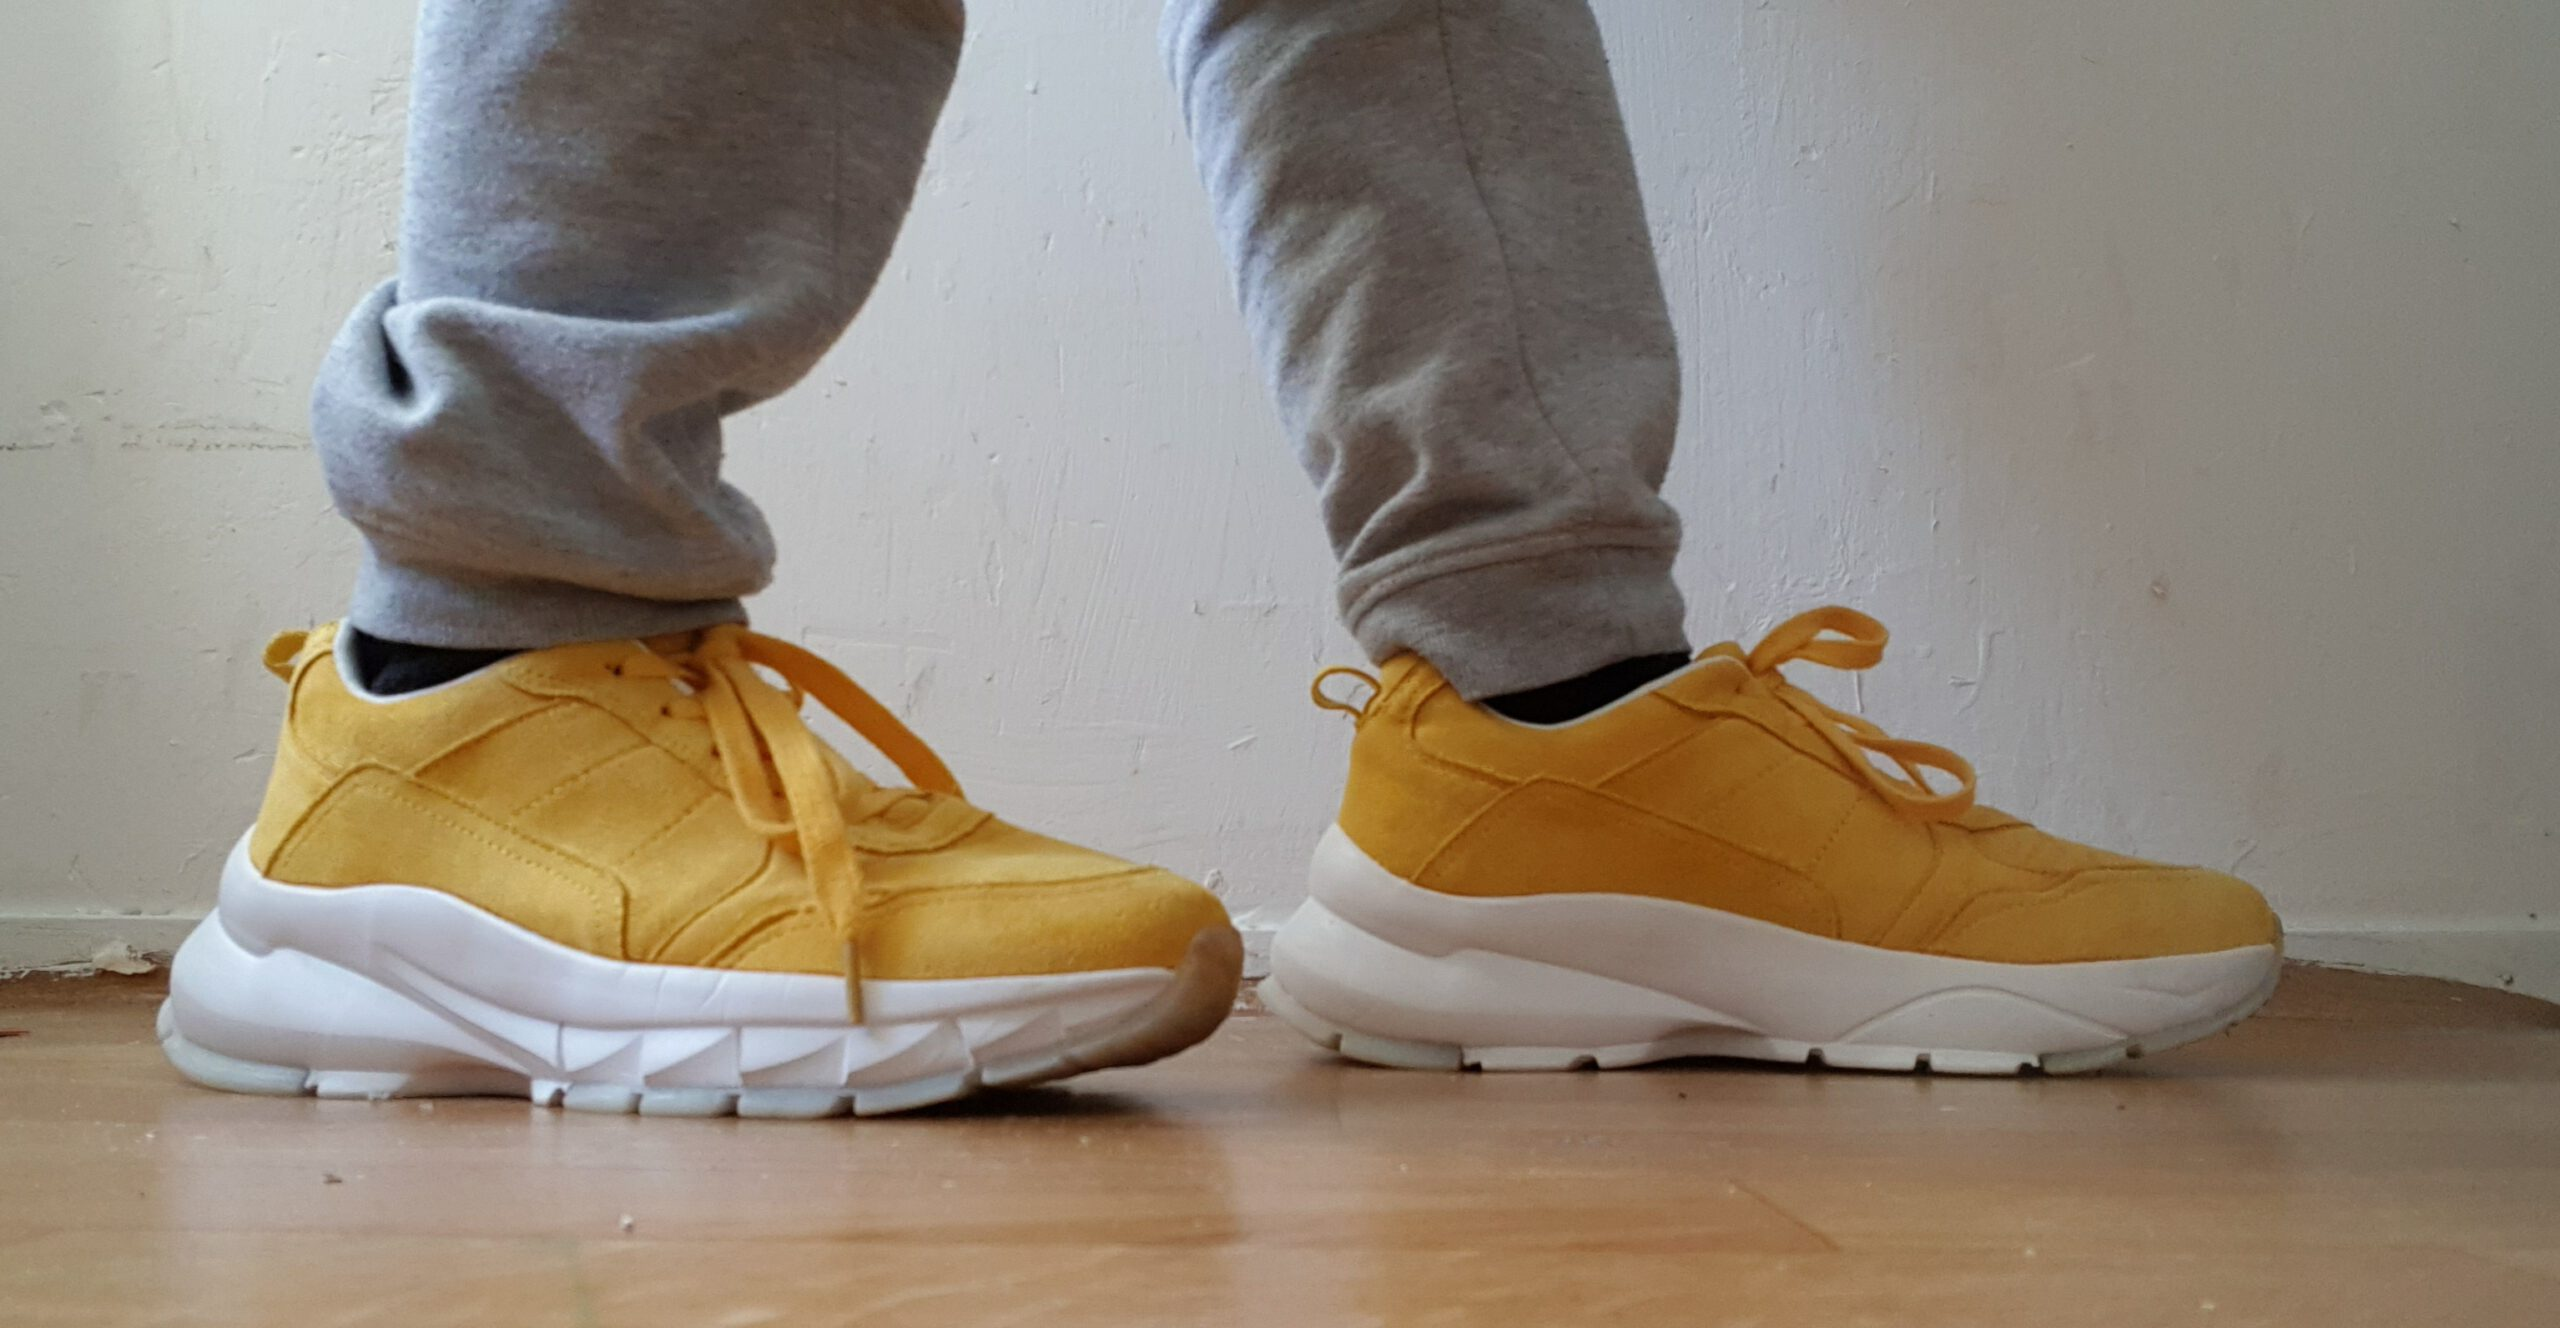 new yellow shoes